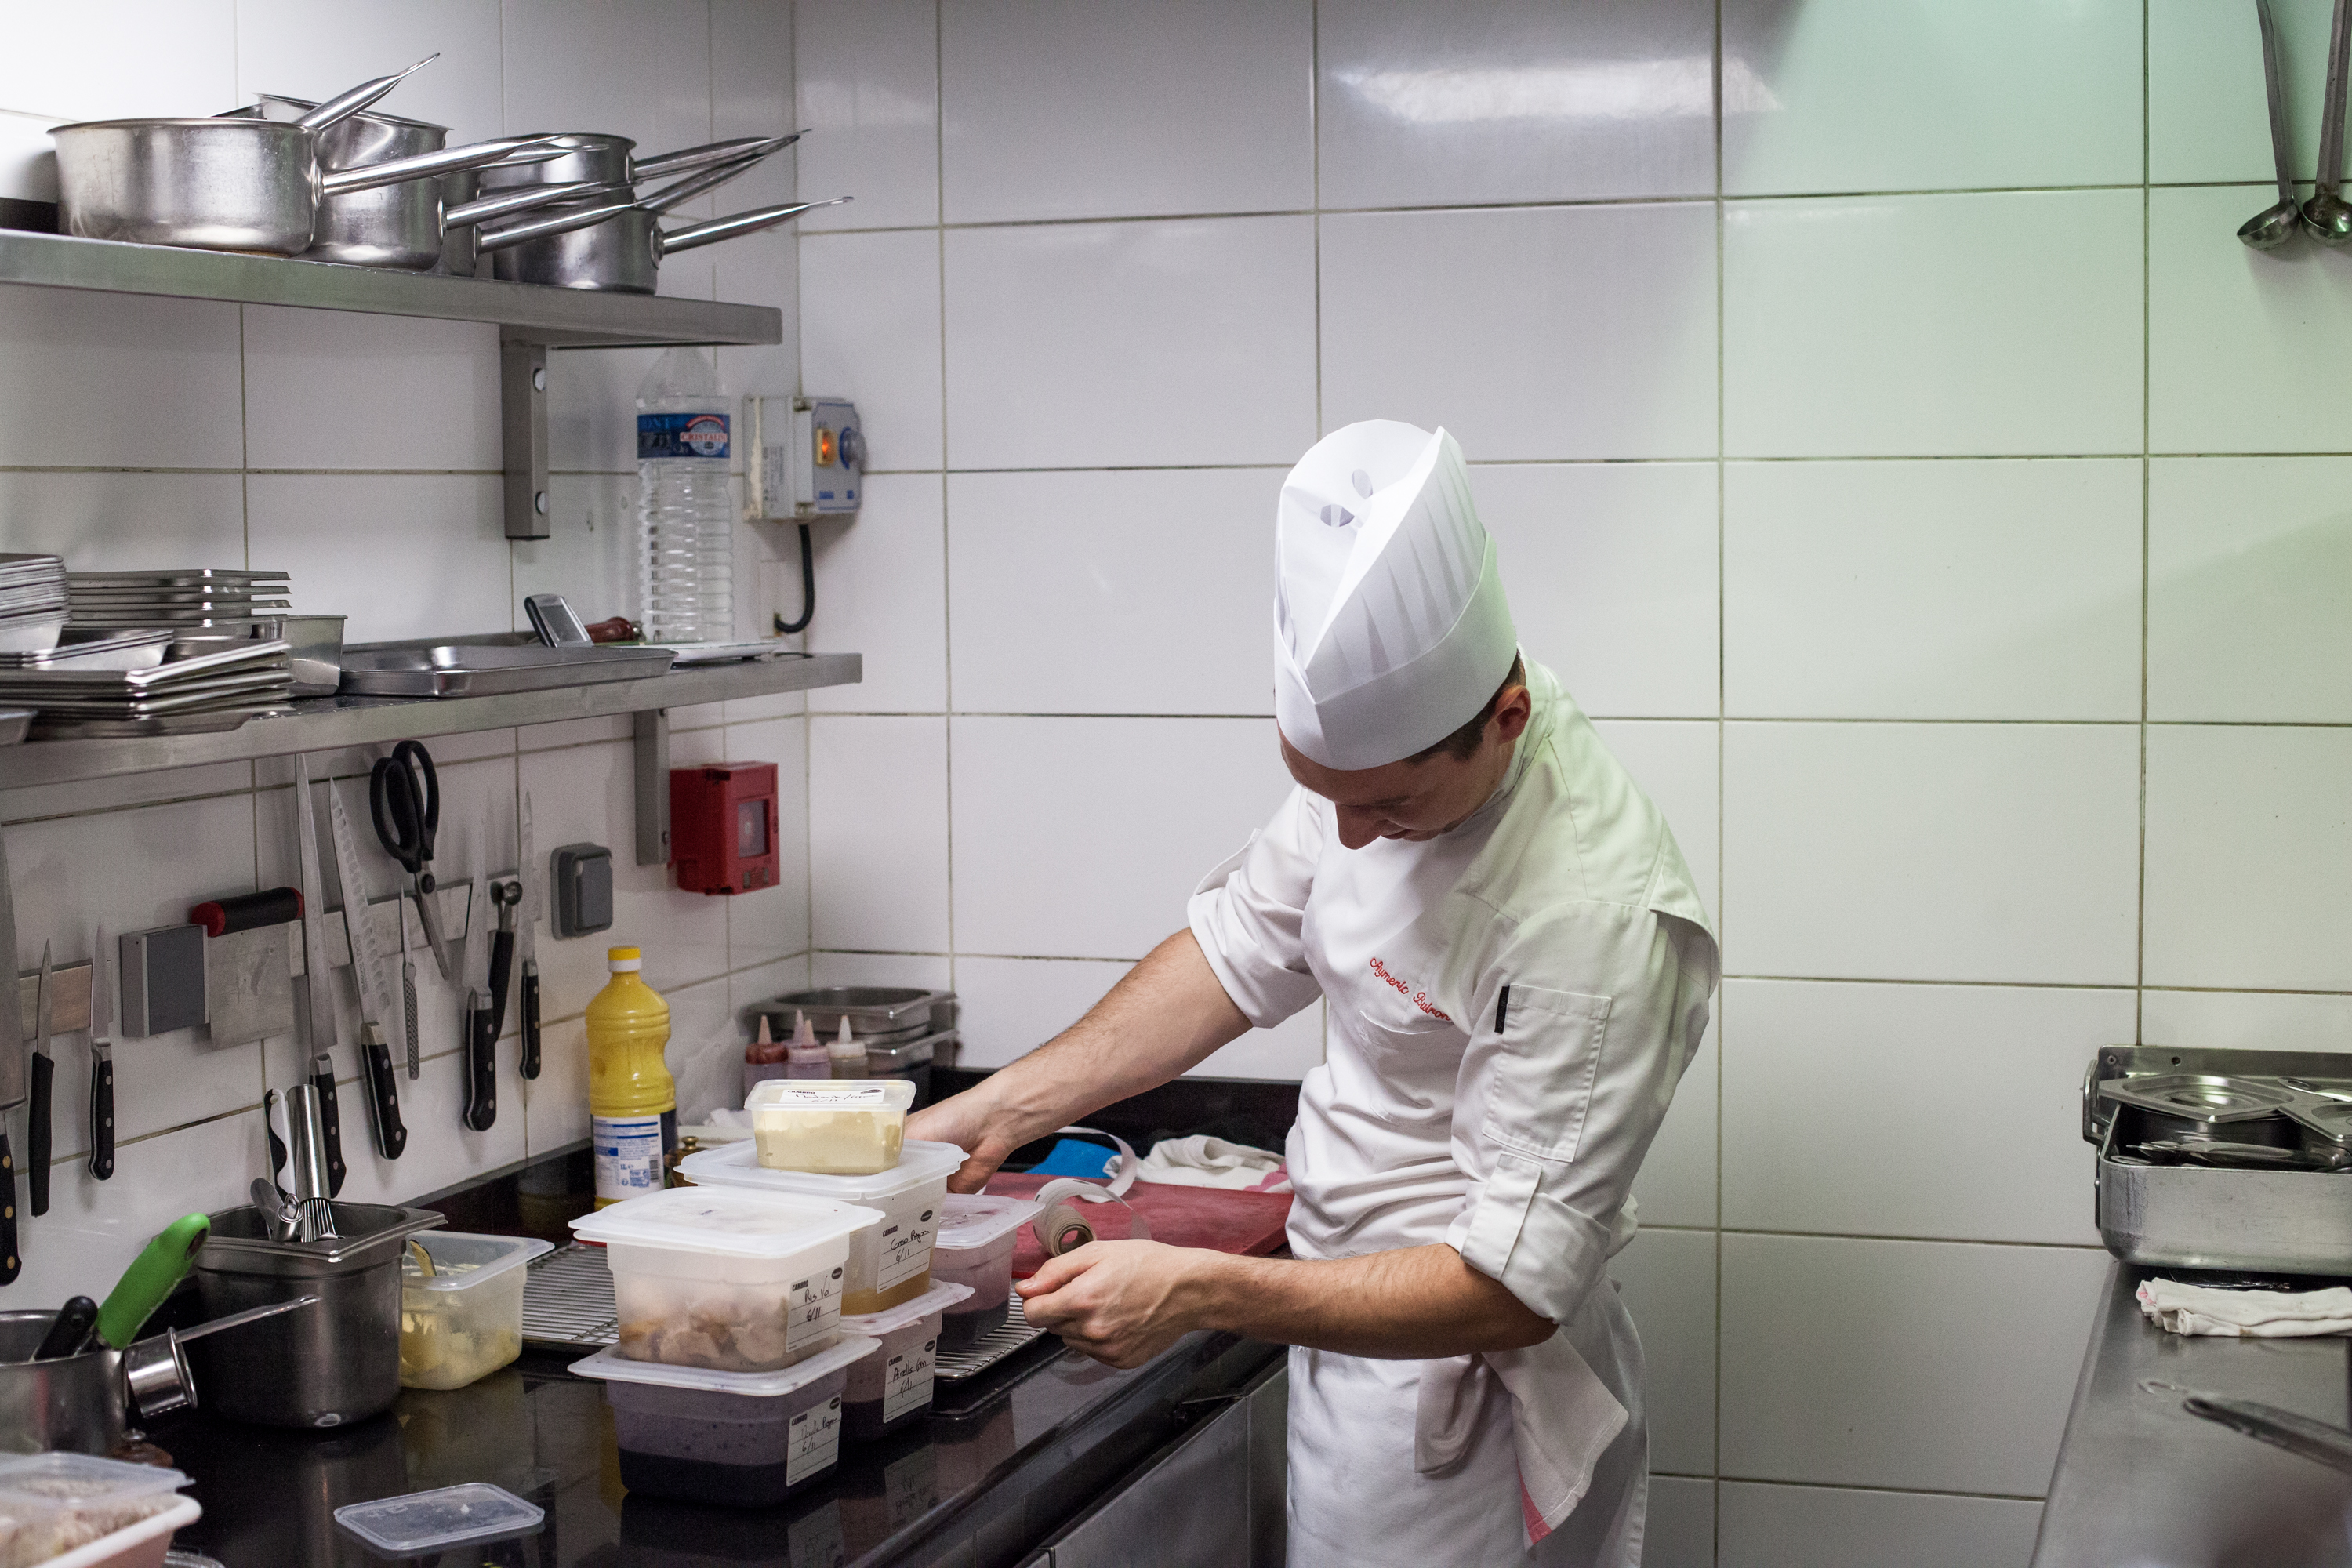 1. A chef measures ingredients to prepare for a lunch service. 2. Chefs at work while the service is starting.